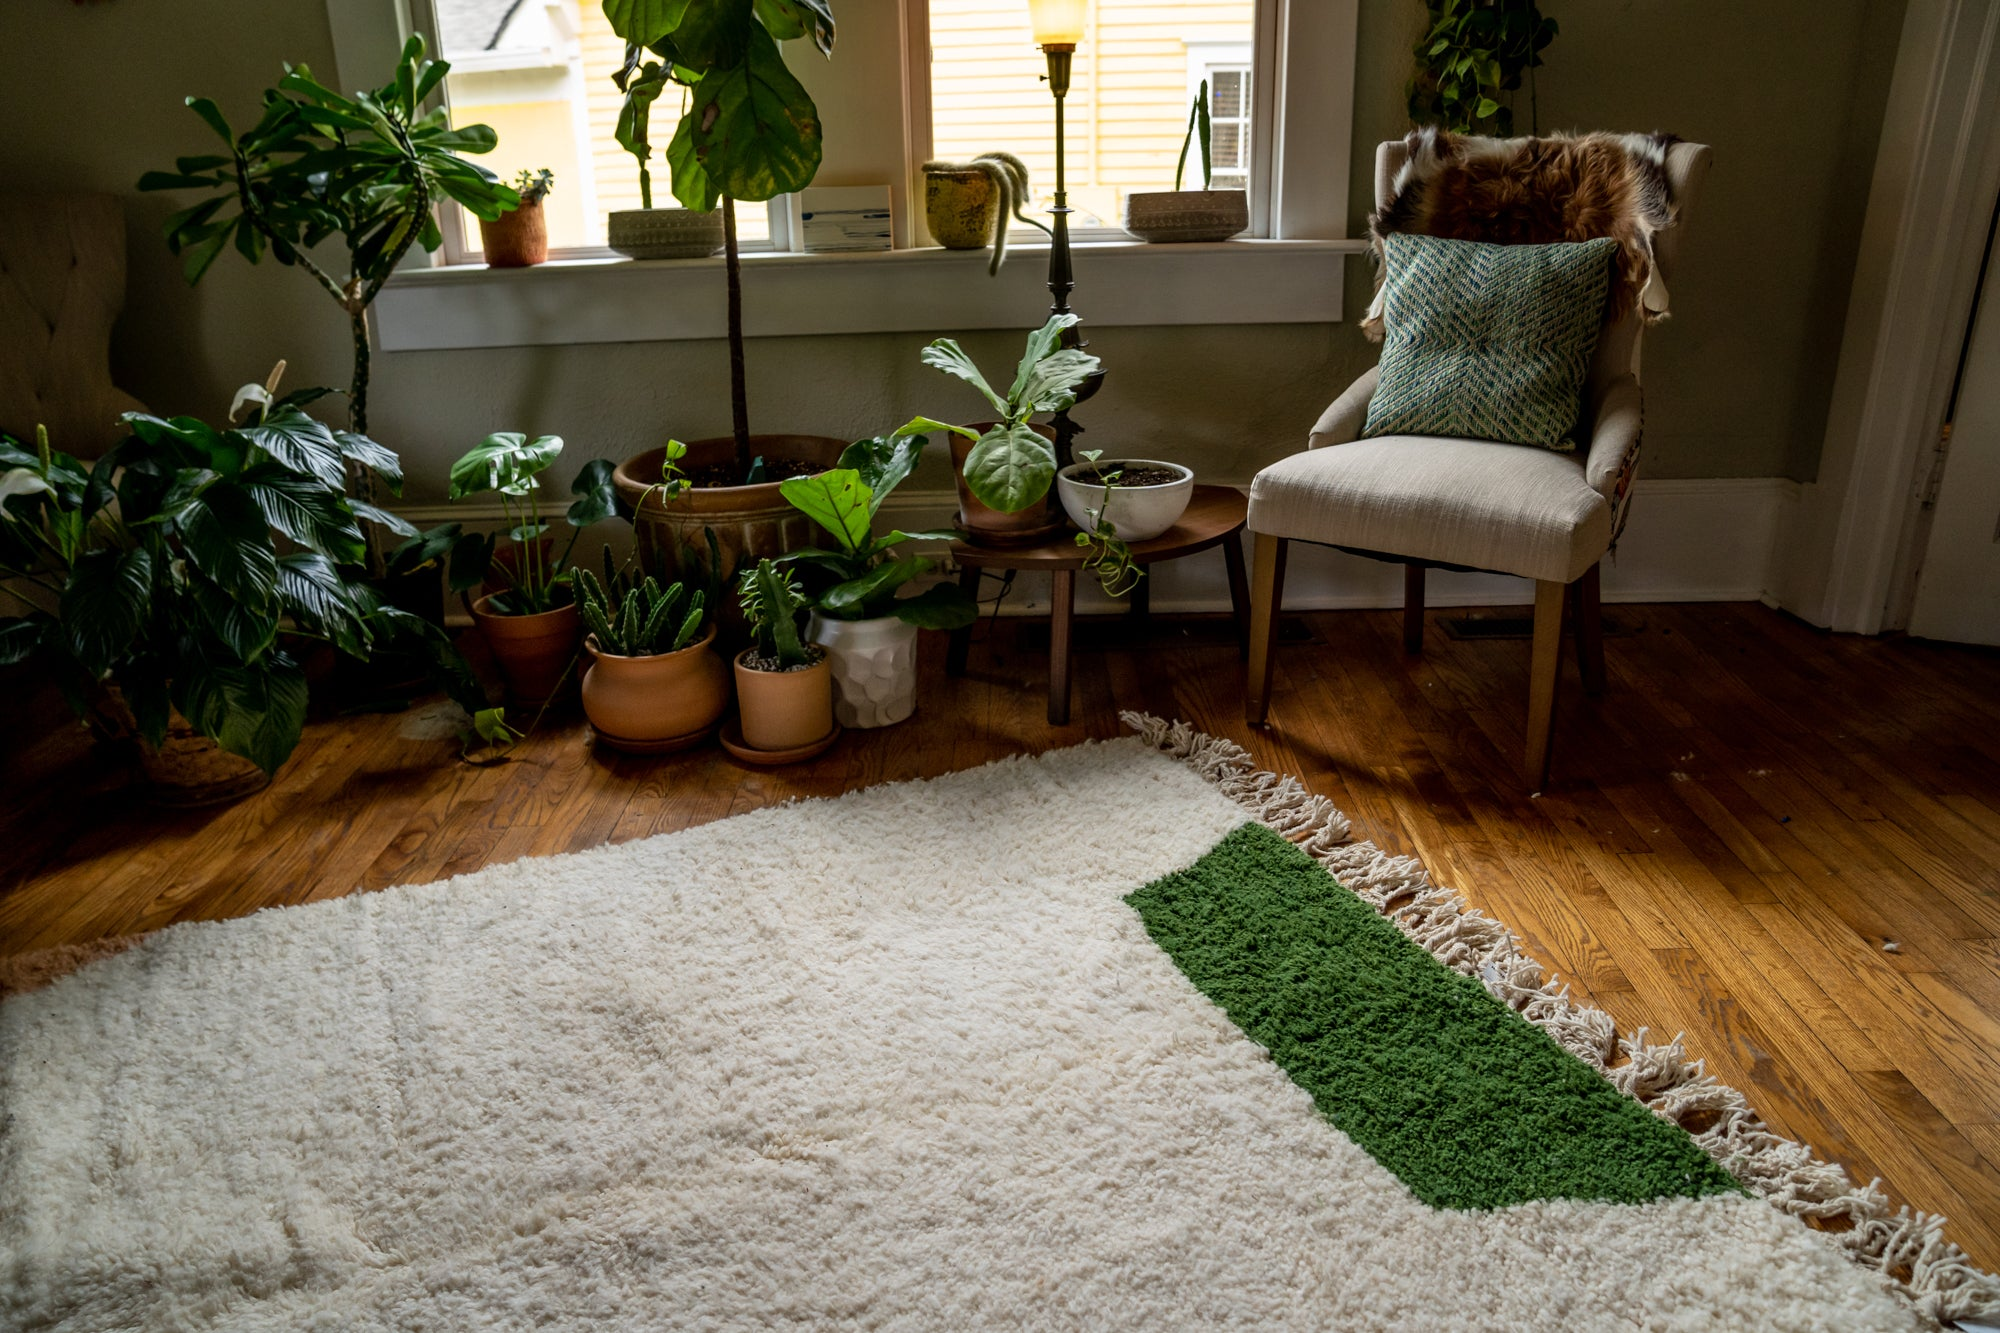 Moroccan Pile Knot Rug: Green, Blush and Black Forms